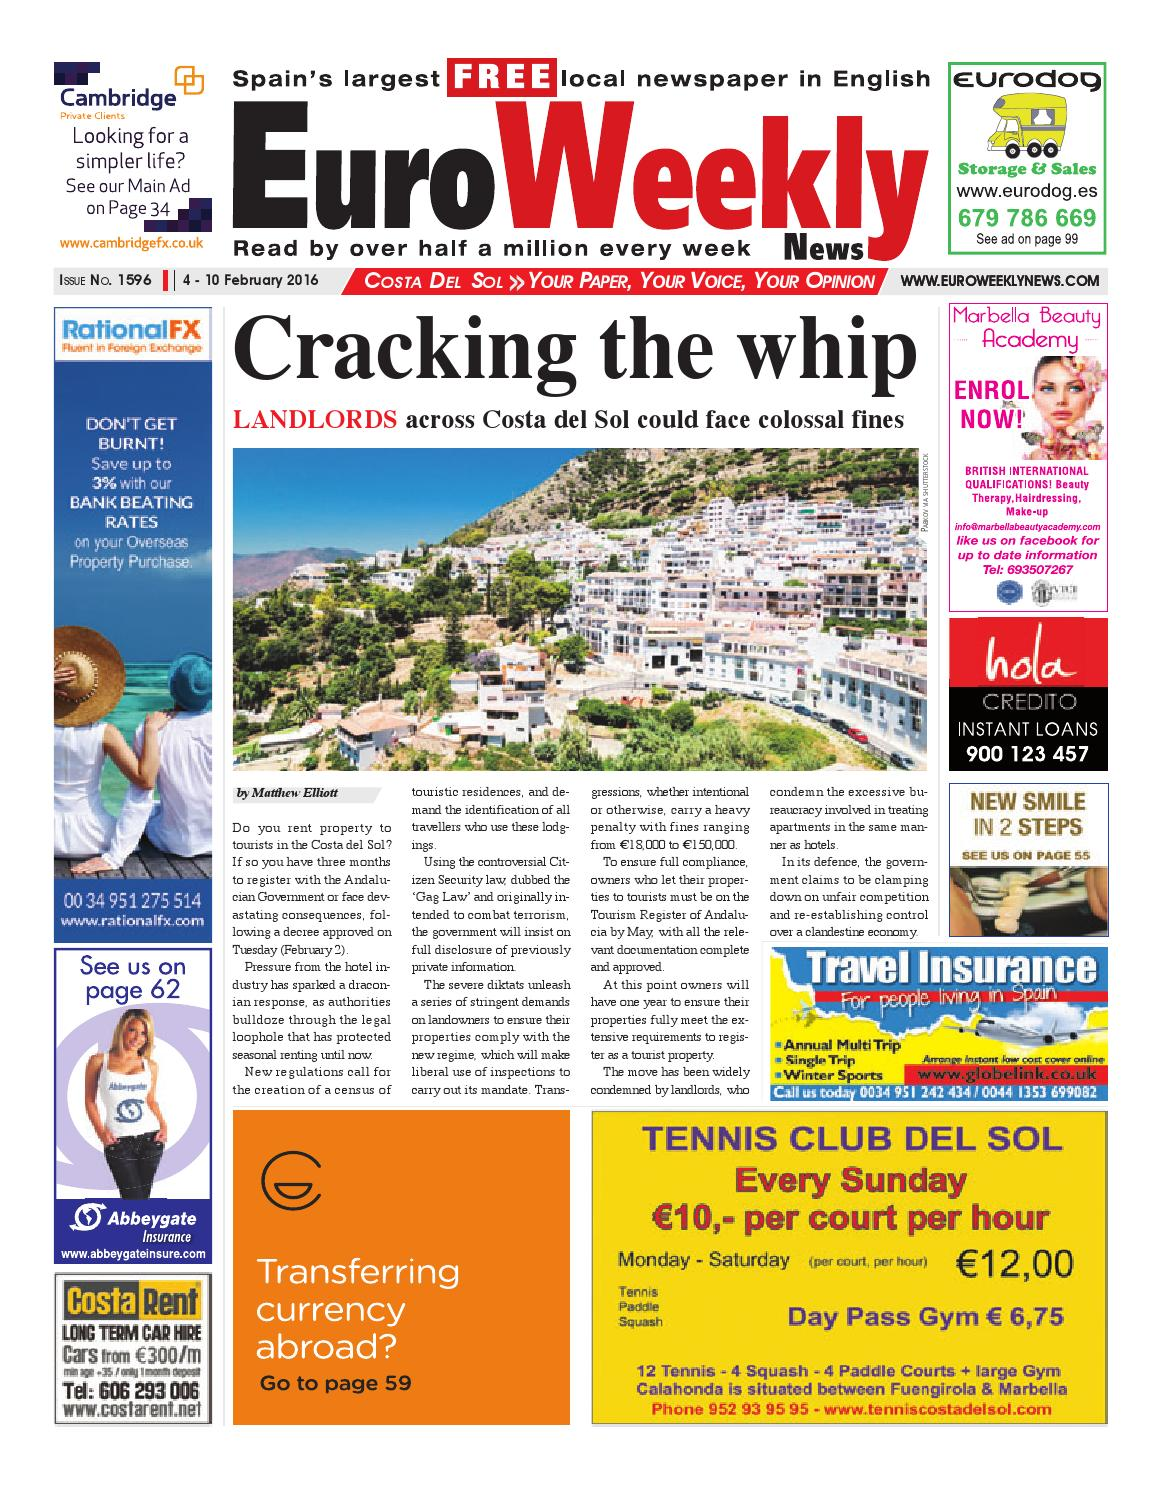 4f91d42ae03a1 Euro Weekly News - Costa del Sol 4 - 10 February 2016 Issue 1596 by Euro  Weekly News Media S.A. - issuu